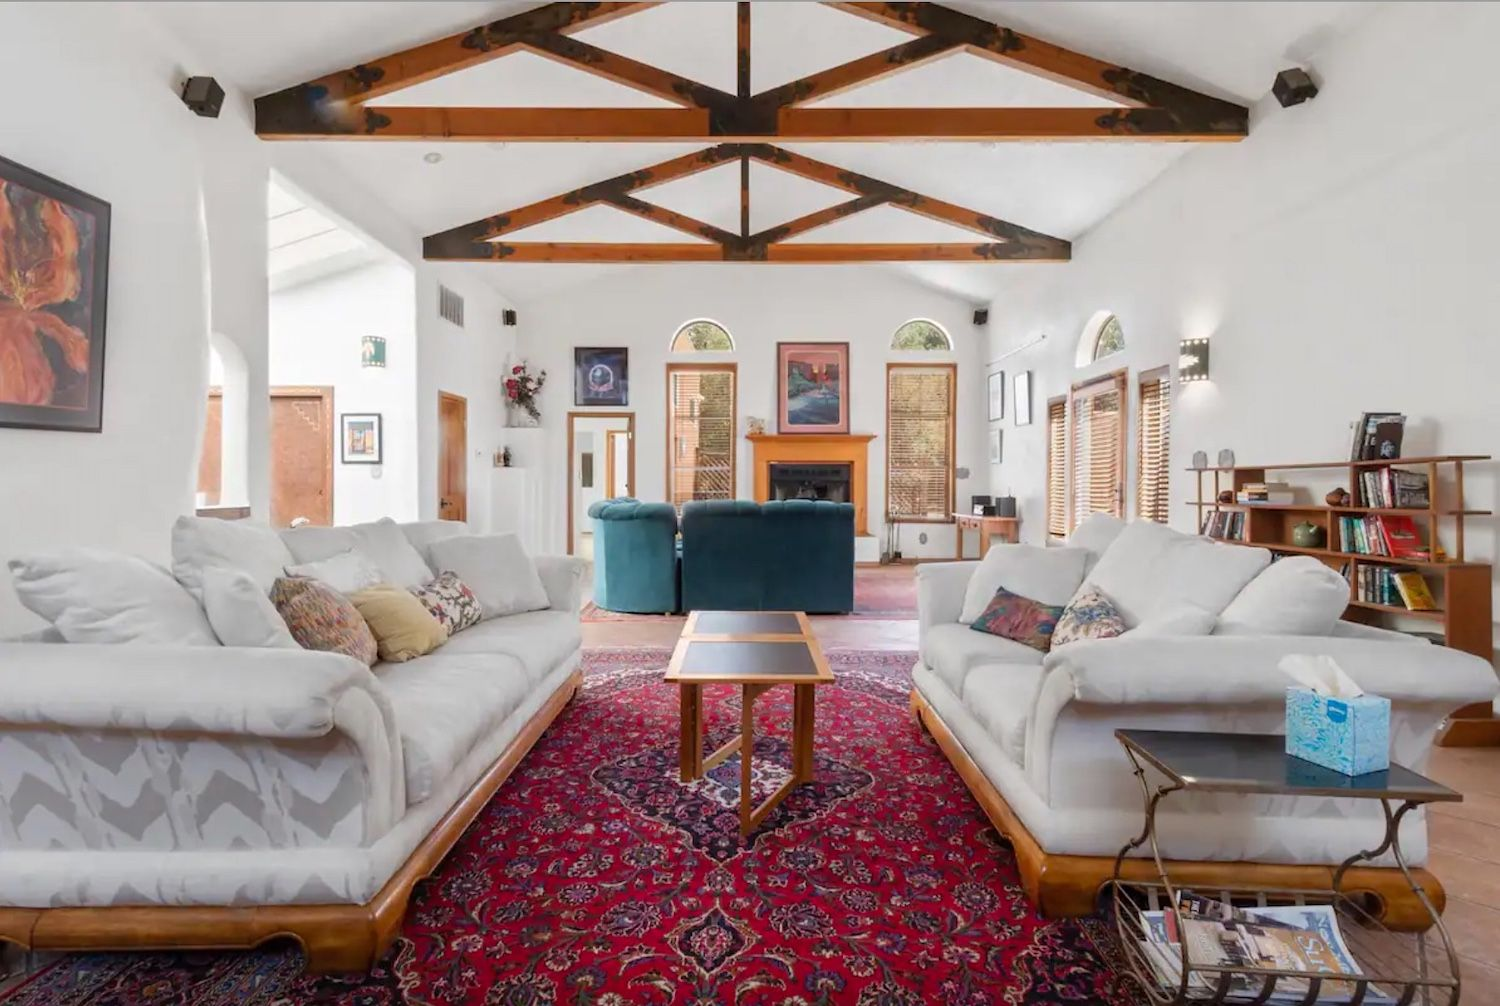 Interior of traditional adobe home available on Airbnb and close to the Albuquerque International Balloon Fiesta